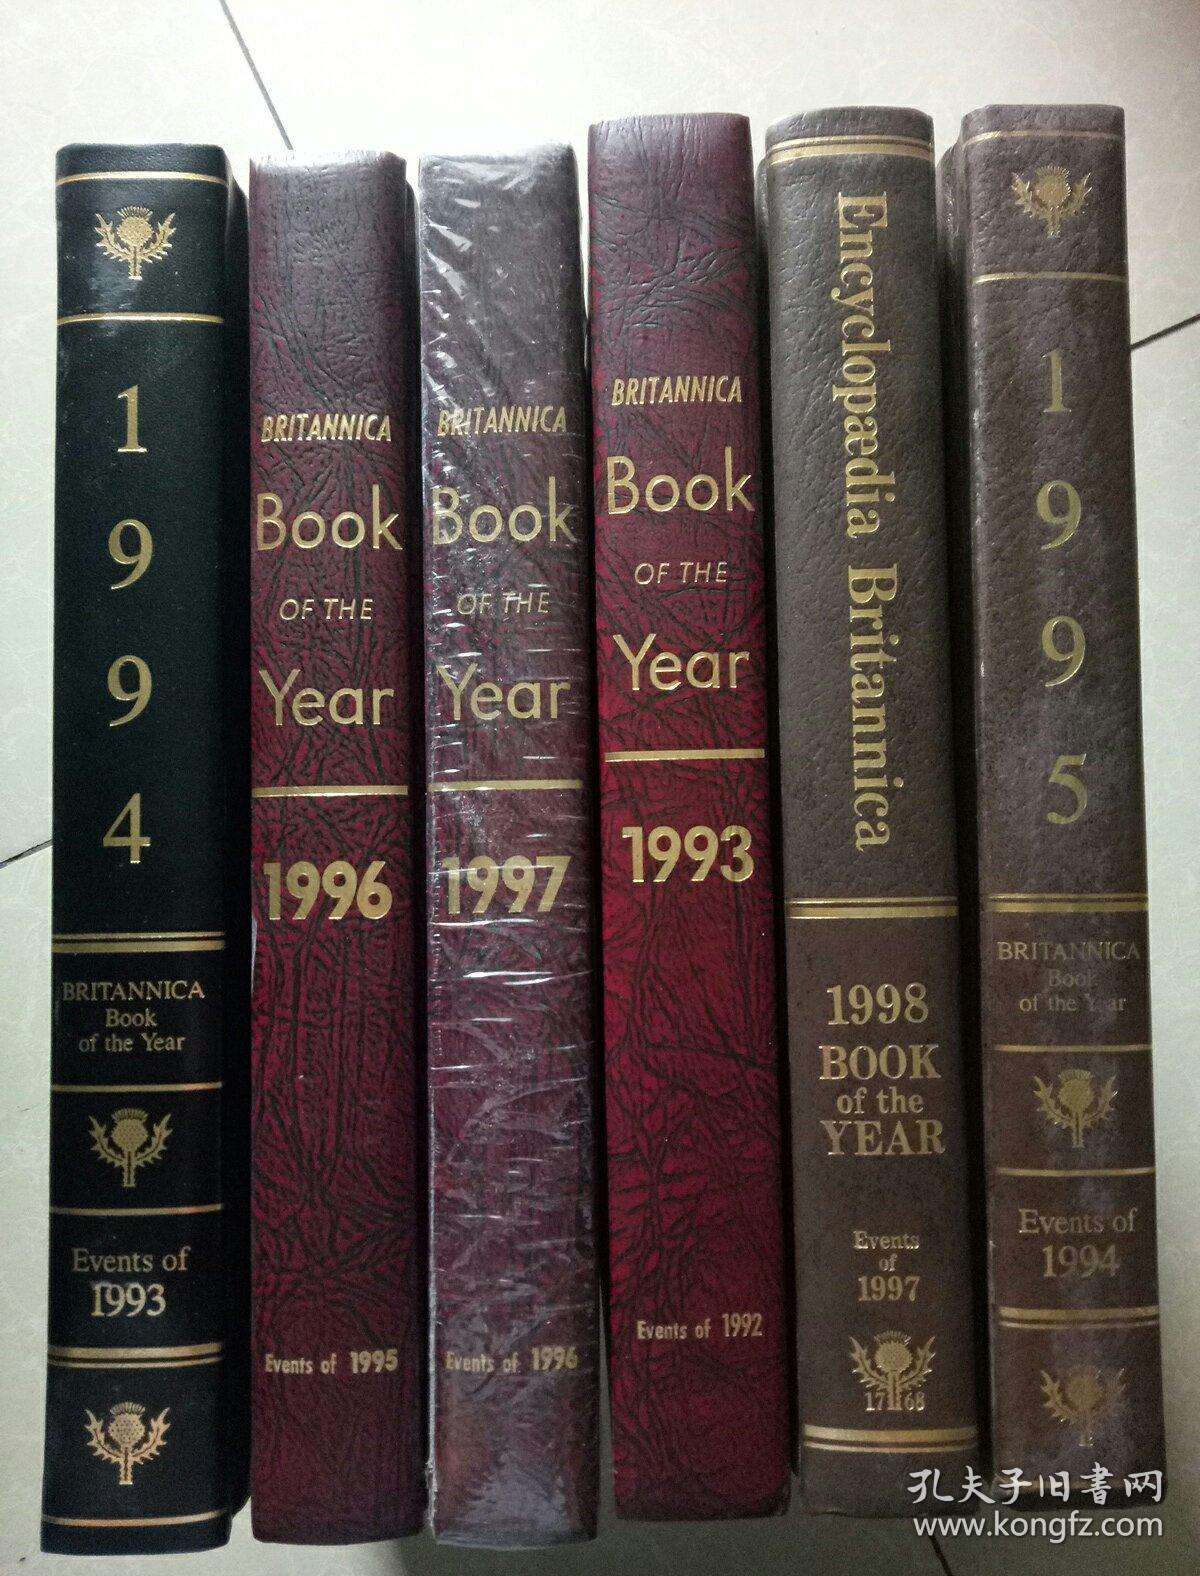 Britannica Book of the Year 【93、94、95、96,97、98年/ 6本合售】都是精装